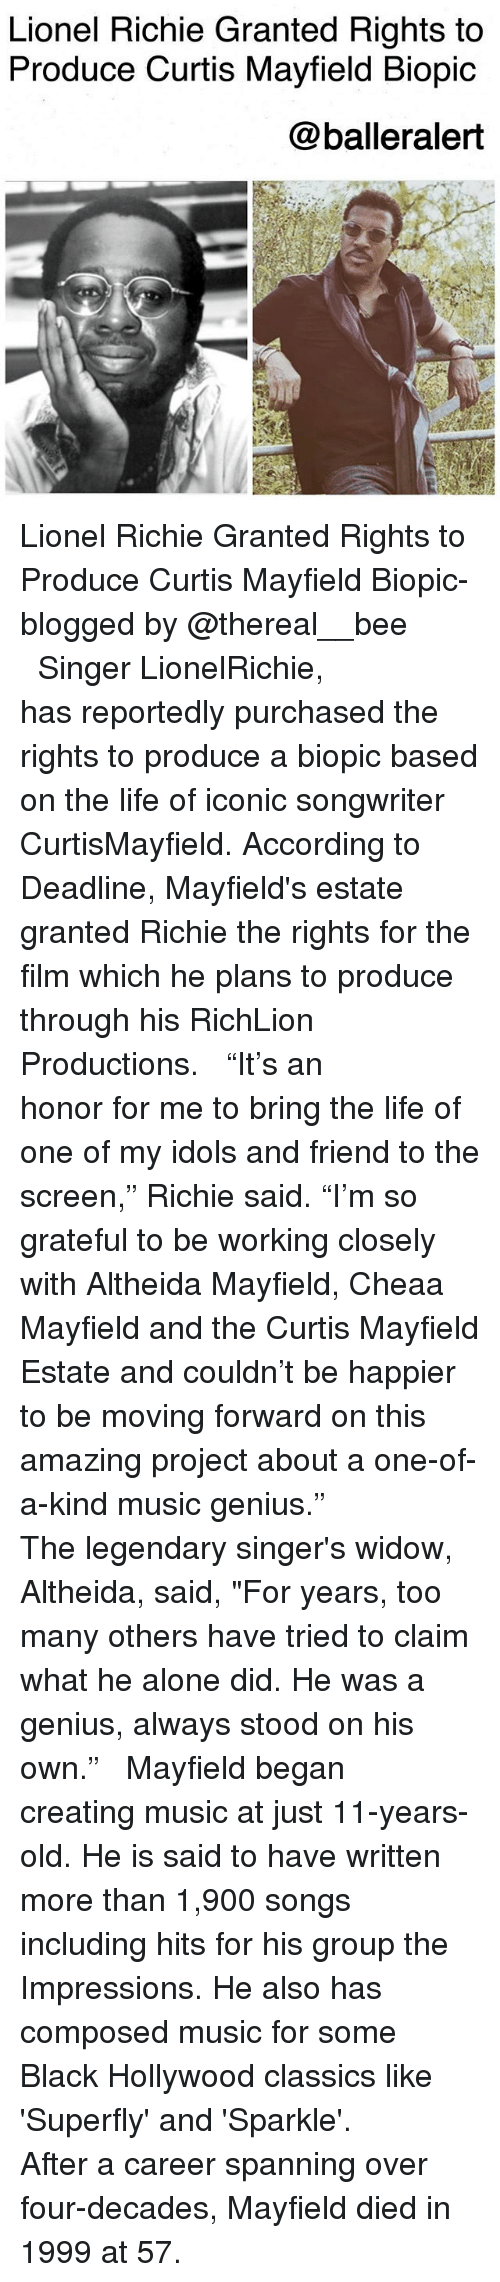 """Lionel Richie: Lionel Richie Granted Rights to  Produce Curtis Mayfield Biopic  @balleralert Lionel Richie Granted Rights to Produce Curtis Mayfield Biopic-blogged by @thereal__bee ⠀⠀⠀⠀⠀⠀⠀⠀⠀ ⠀⠀ Singer LionelRichie, has reportedly purchased the rights to produce a biopic based on the life of iconic songwriter CurtisMayfield. According to Deadline, Mayfield's estate granted Richie the rights for the film which he plans to produce through his RichLion Productions. ⠀⠀⠀⠀⠀⠀⠀⠀⠀ ⠀⠀ """"It's an honor for me to bring the life of one of my idols and friend to the screen,"""" Richie said. """"I'm so grateful to be working closely with Altheida Mayfield, Cheaa Mayfield and the Curtis Mayfield Estate and couldn't be happier to be moving forward on this amazing project about a one-of-a-kind music genius."""" ⠀⠀⠀⠀⠀⠀⠀⠀⠀ ⠀⠀ The legendary singer's widow, Altheida, said, """"For years, too many others have tried to claim what he alone did. He was a genius, always stood on his own."""" ⠀⠀⠀⠀⠀⠀⠀⠀⠀ ⠀⠀ Mayfield began creating music at just 11-years-old. He is said to have written more than 1,900 songs including hits for his group the Impressions. He also has composed music for some Black Hollywood classics like 'Superfly' and 'Sparkle'. ⠀⠀⠀⠀⠀⠀⠀⠀⠀ ⠀⠀ After a career spanning over four-decades, Mayfield died in 1999 at 57."""